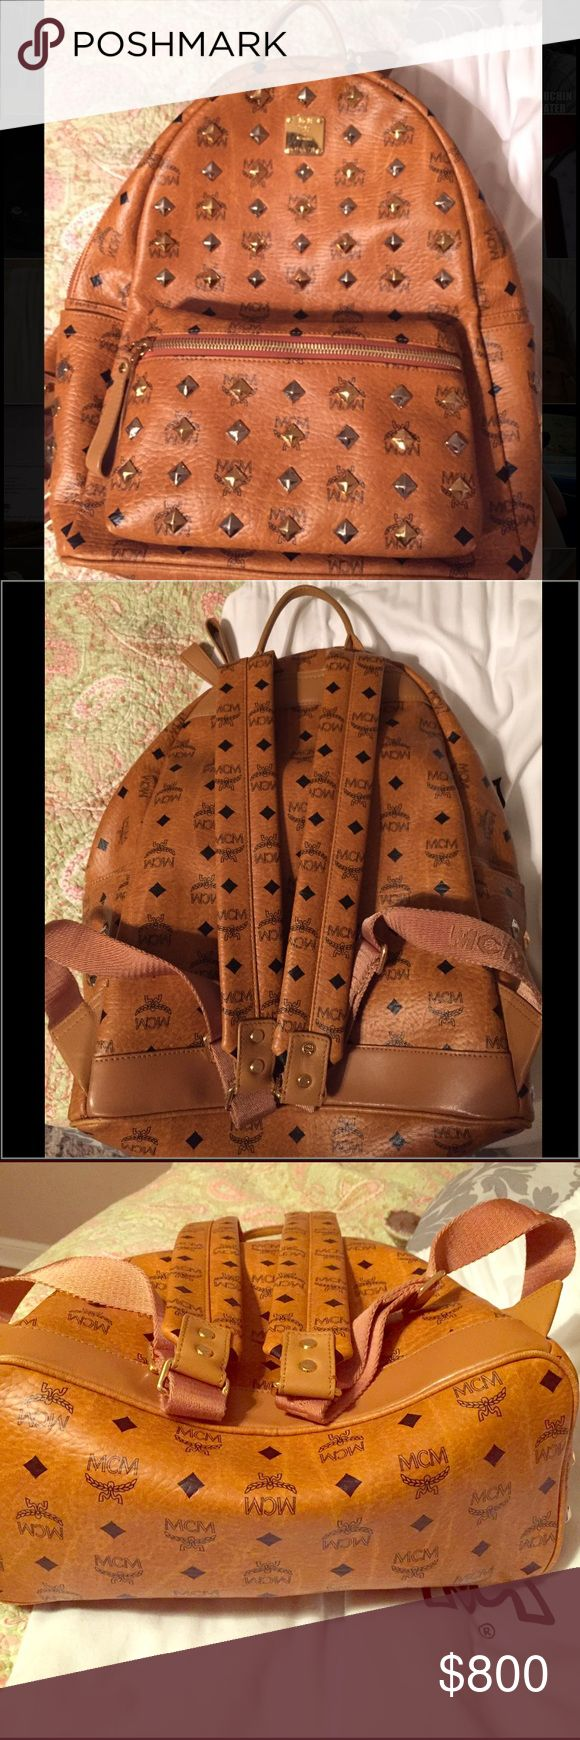 BRAND NEW MCM Studded Stark leather backpack ! Mens MCM studded stark backpack! BRAND NEW with RECEIPT & DUST BAG from SAKS FIFTH AVENUE! This bag displays the Signature cognac leather and monogram mcm print. Sleek yet simple! An everyday bag. Very Famous and Trendy brand. The bag is made with the finest leathers very soft and supple. ONLY ACCEPT POSHMARK & NO LOWBALL OFFERS! I can bend no more than asking price Is FIRM due to 20% poshmark deductible. Happy poshing. :) MCM Bags Backpacks